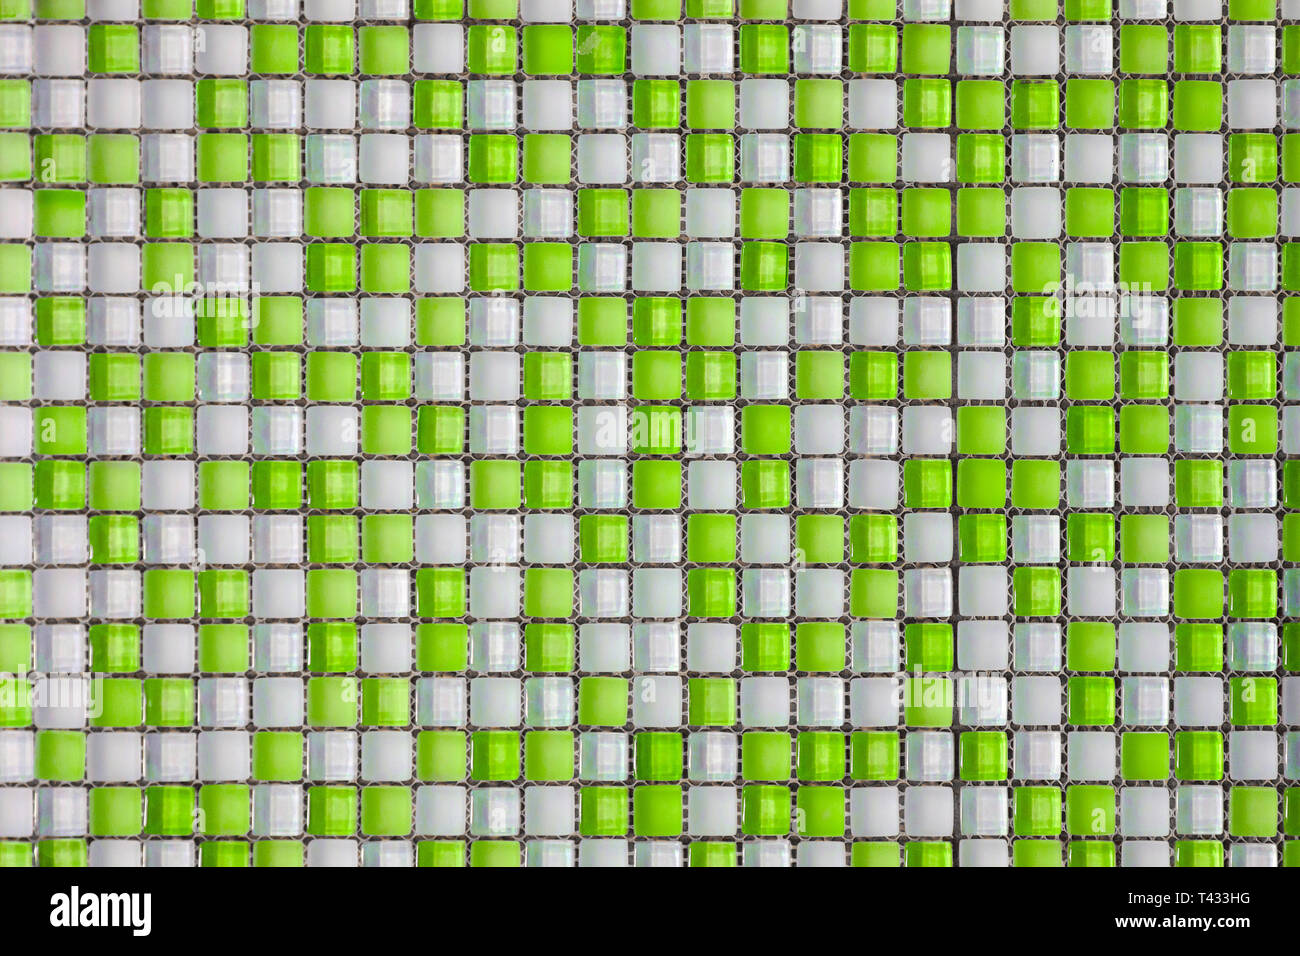 Fliesen Mosaik Dunkelgrün Dark Green Tiles Seamless Background Stockfotos Dark Green Tiles